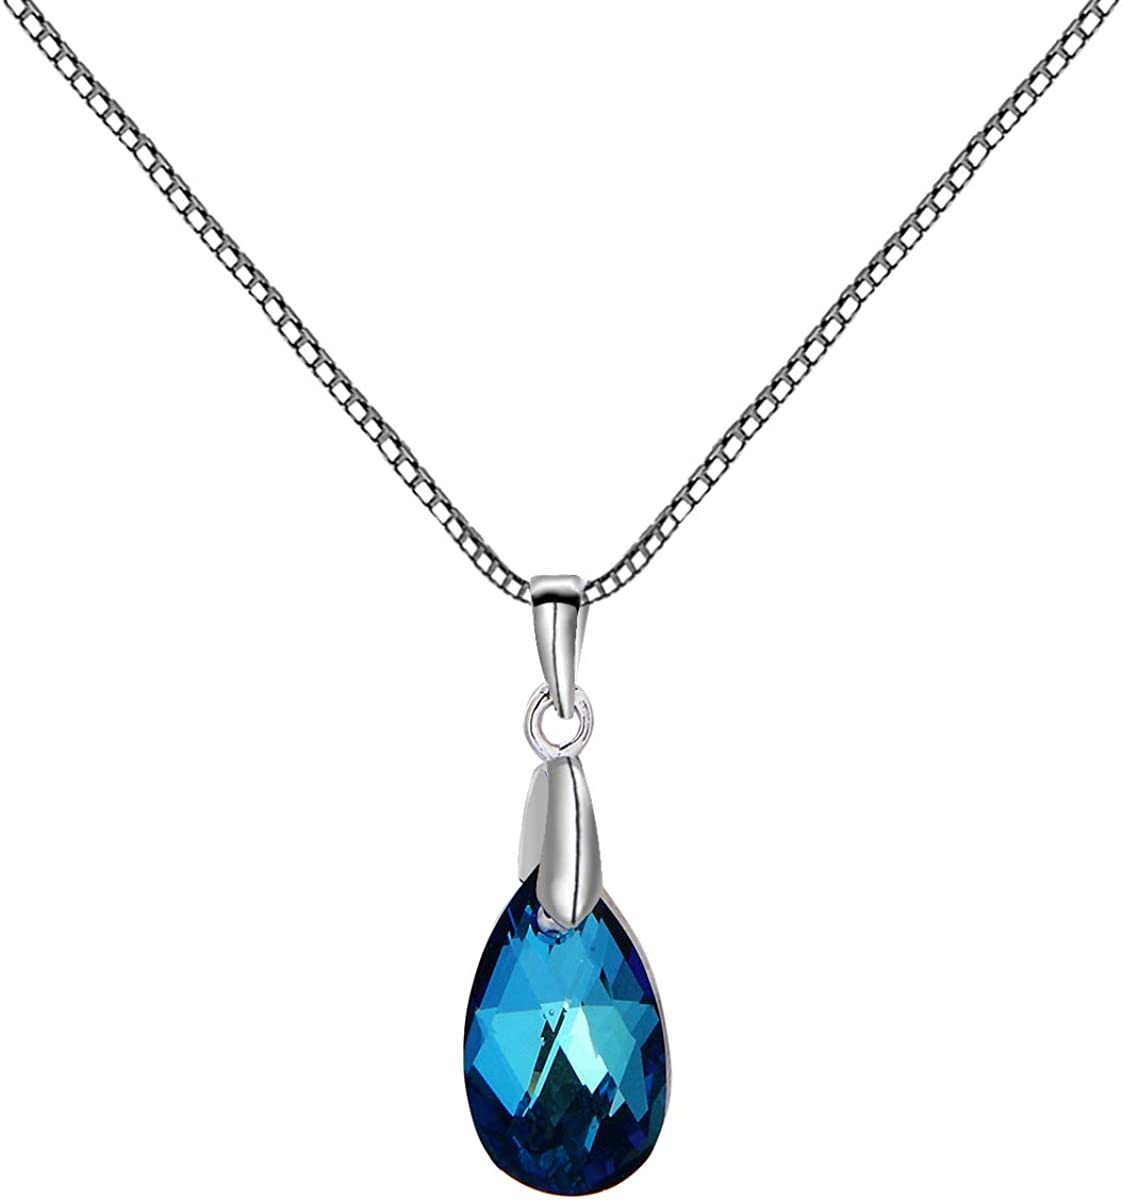 FASHIONS FOREVER® 925 Pear Crystal Necklace-Pendant made with SWAROVSKI® Crystal